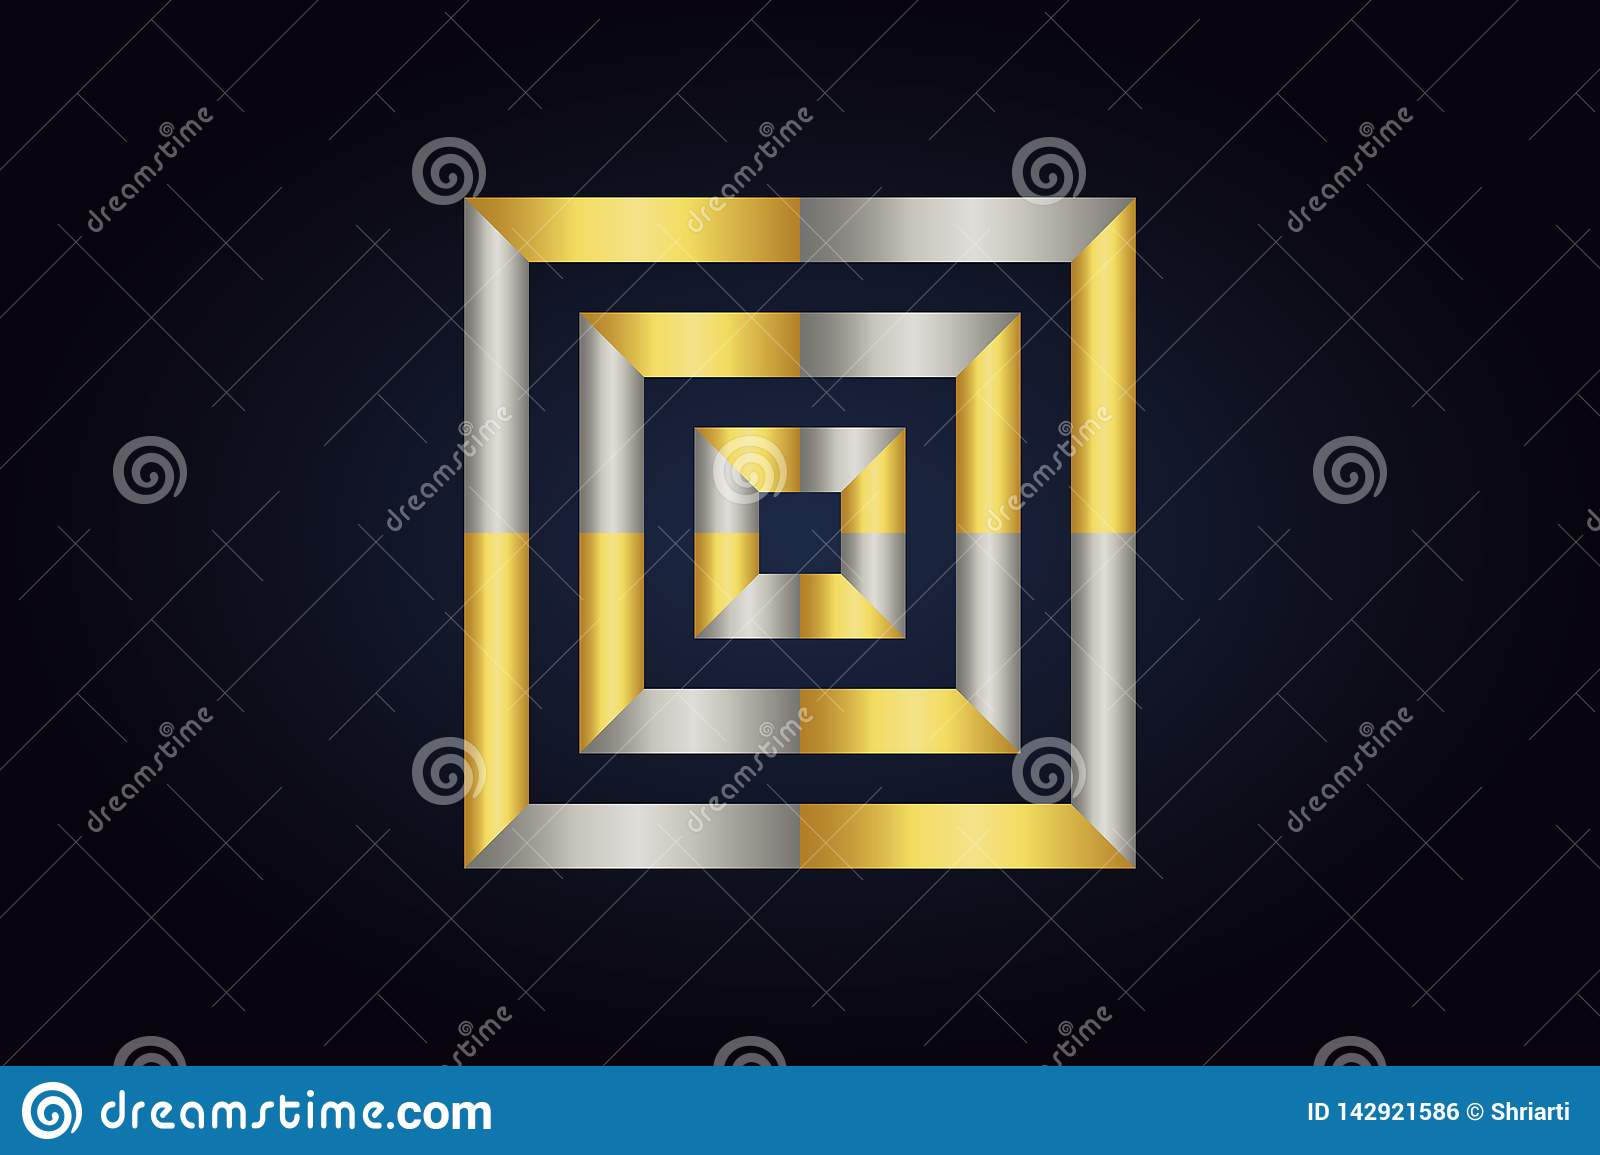 Three squares inside each other. Squares in silver and gold colors.